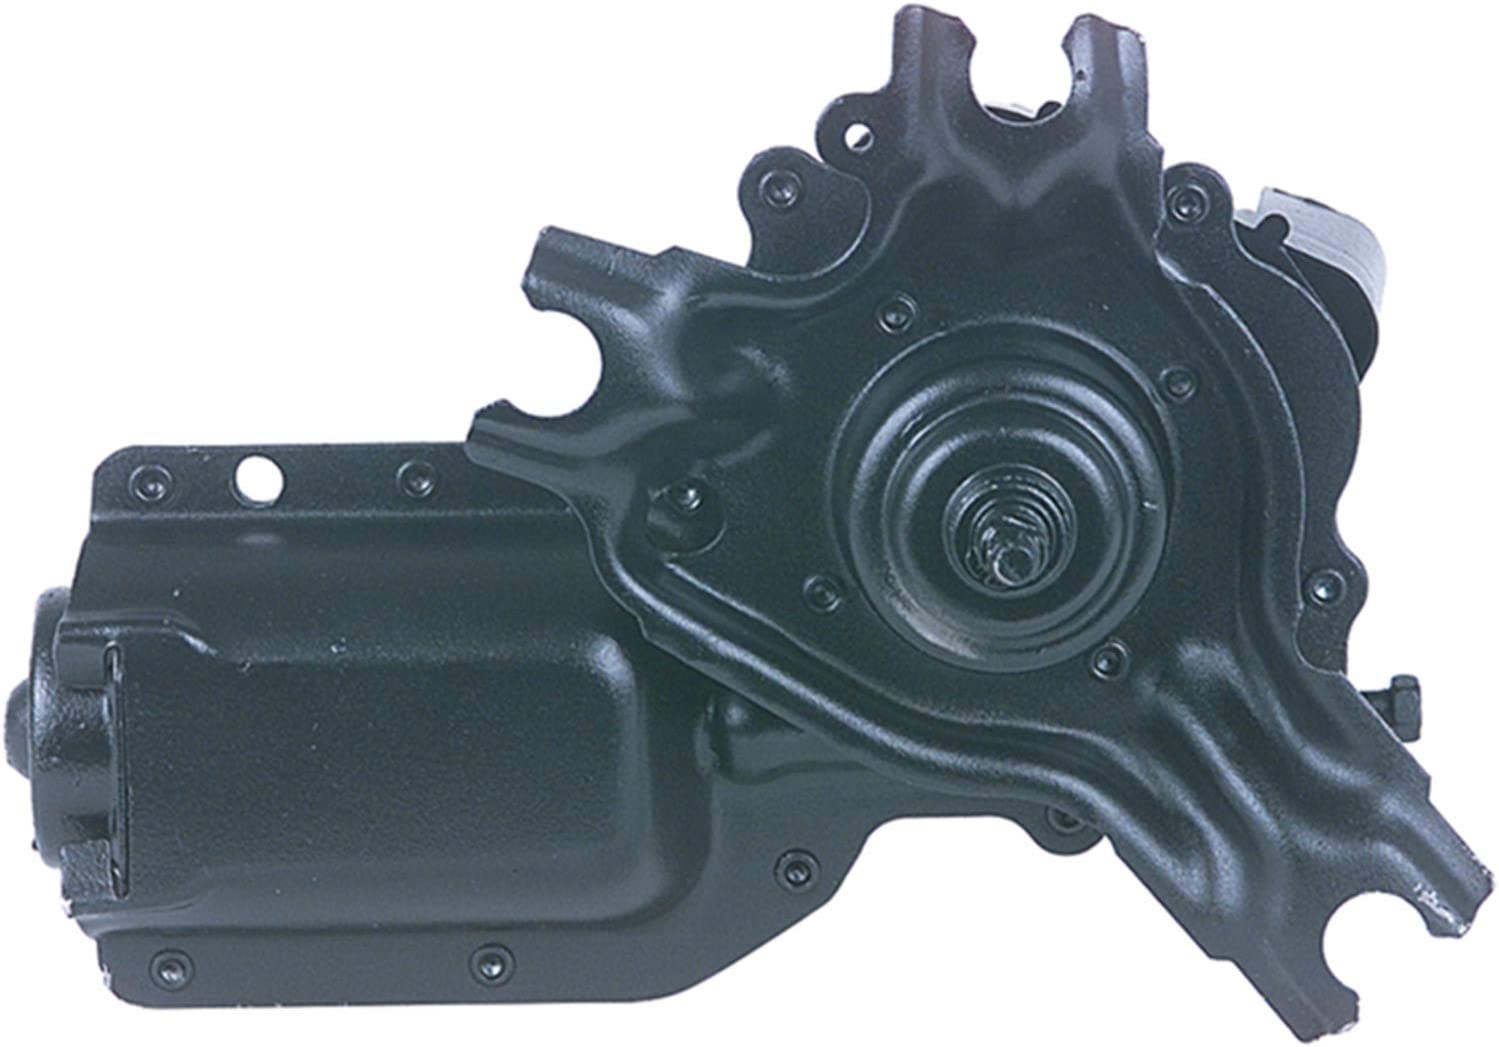 Attention brand Cardone New item 40-182 Remanufactured Wiper Domestic Motor